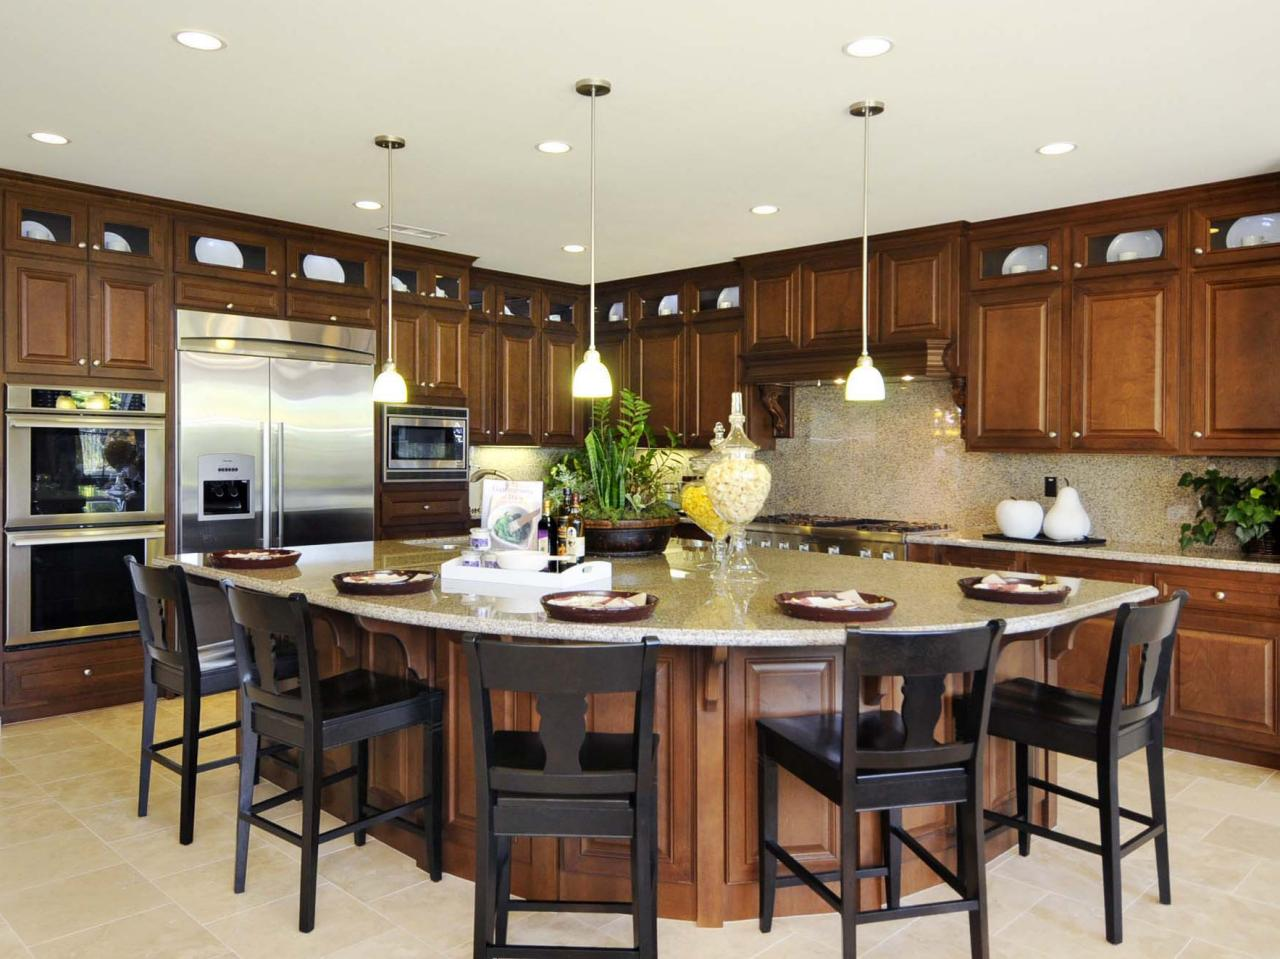 Uncategorized Kitchen Island Designs kitchen island design ideas pictures options tips hgtv ideas